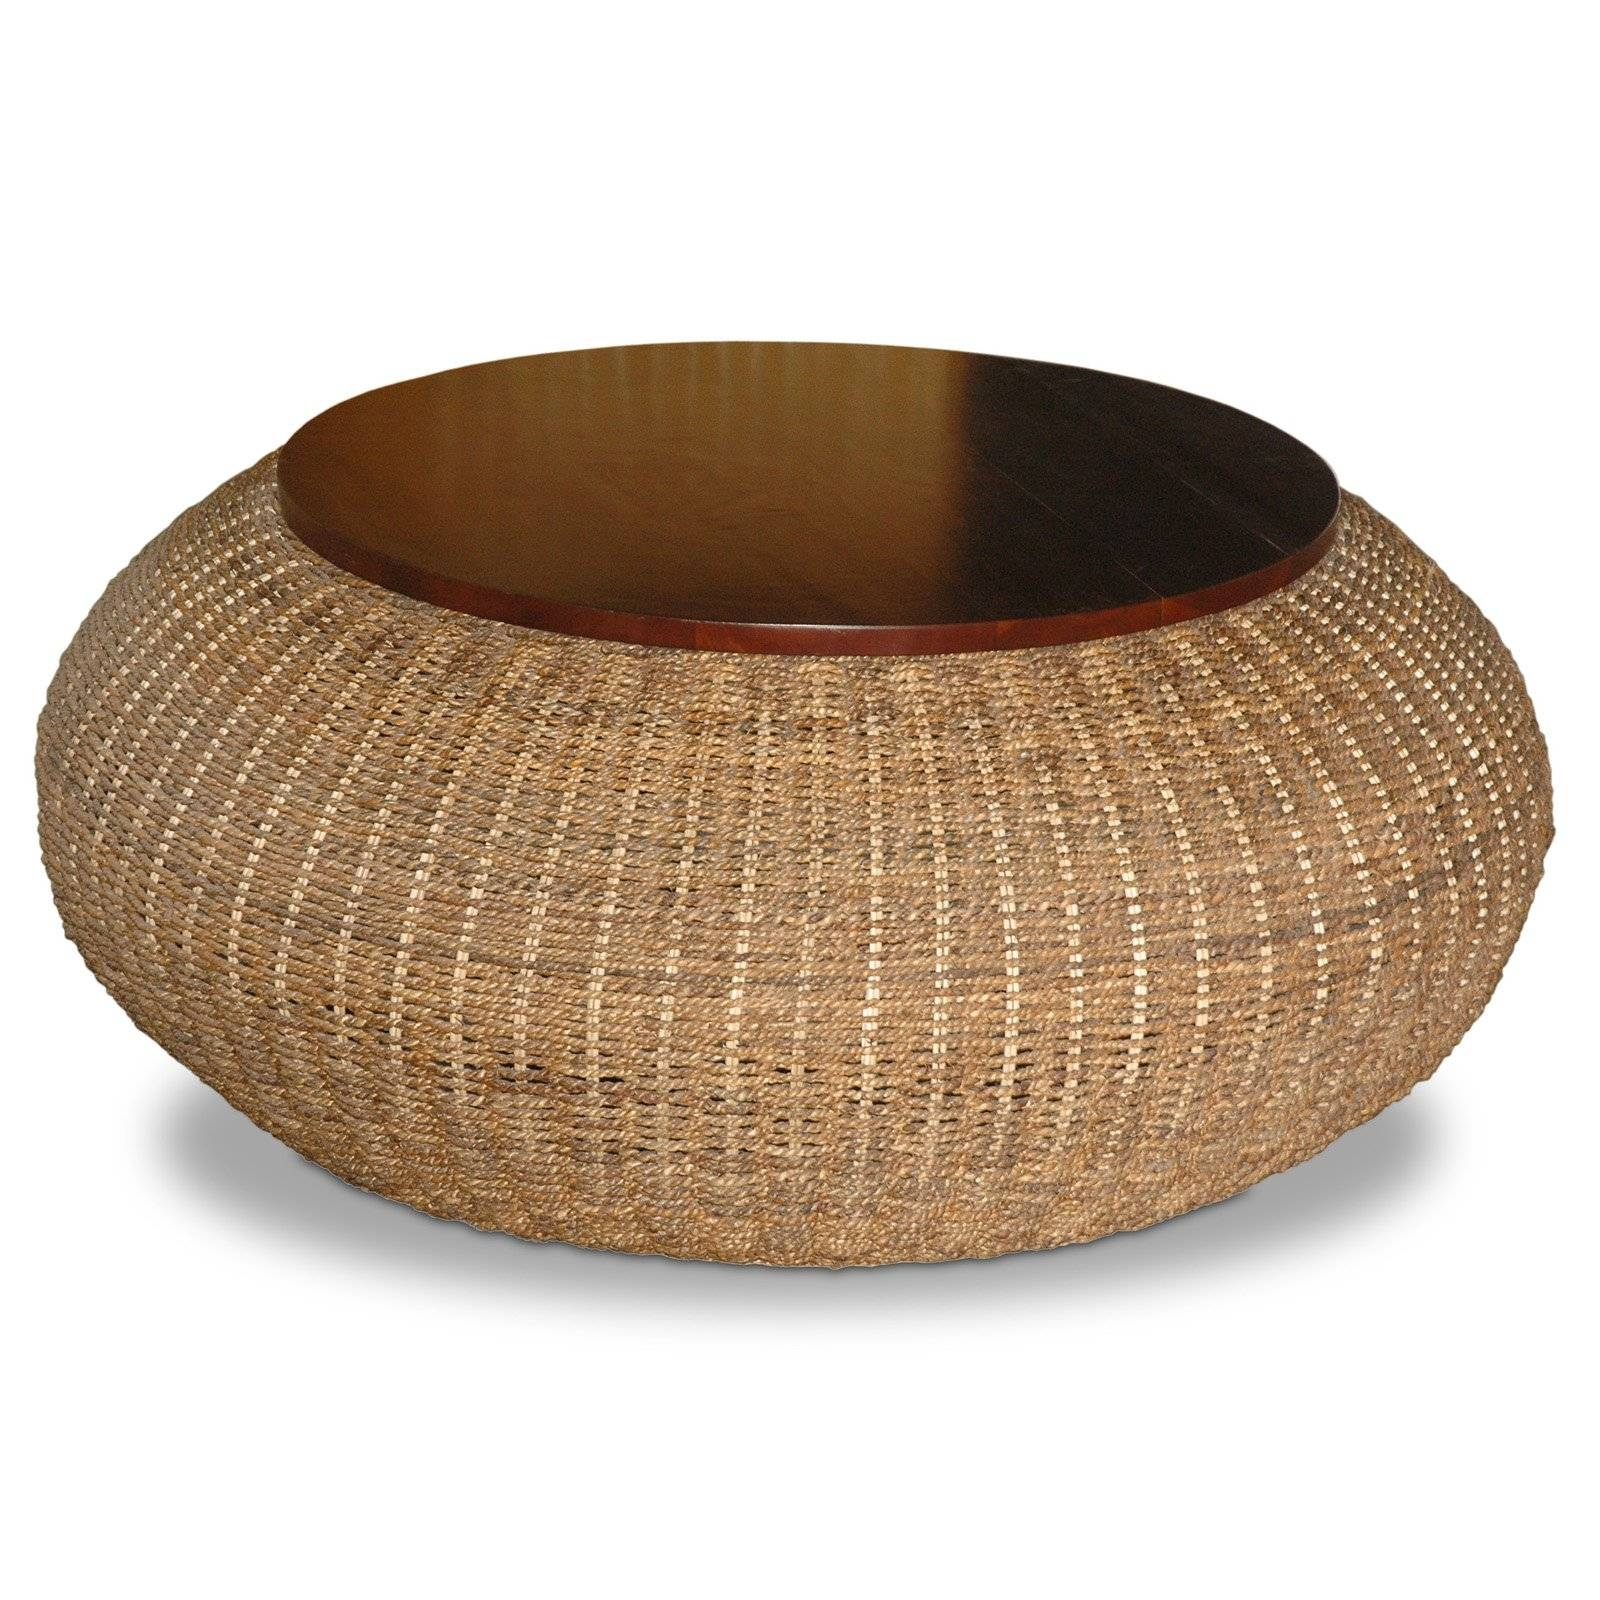 Brown Rattan Round Coffee Table With Storage In An Antique Design in Round Coffee Tables With Storages (Image 3 of 30)